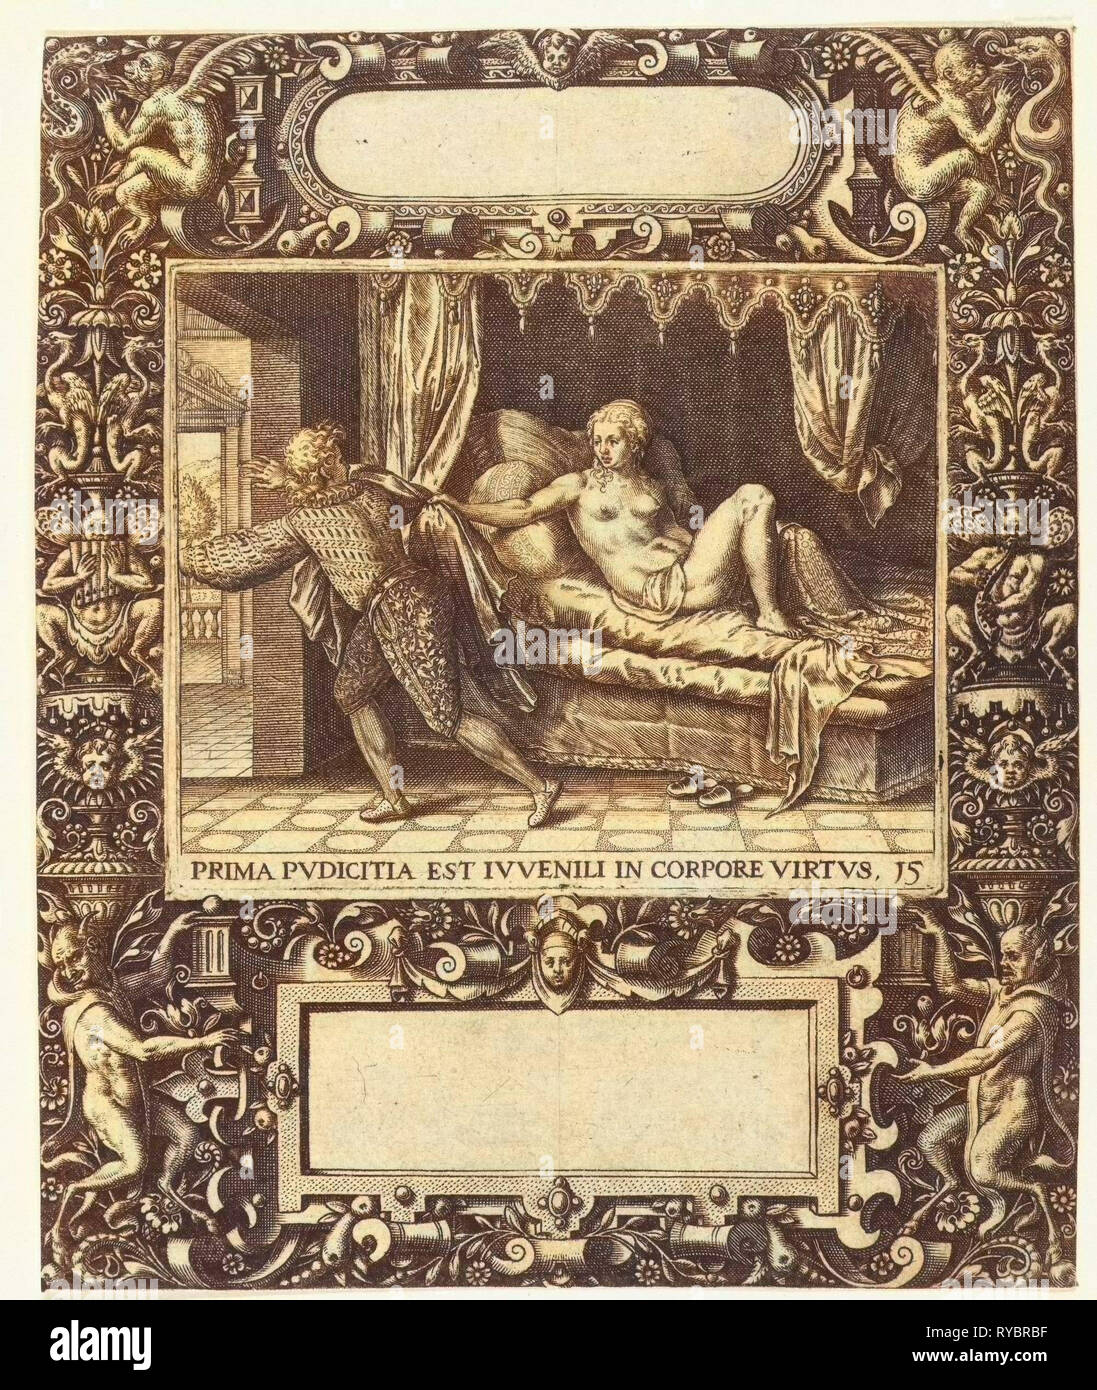 Picture frame with an elongated cartouche with rounded sides, Theodor de Bry, 1593 - Stock Image